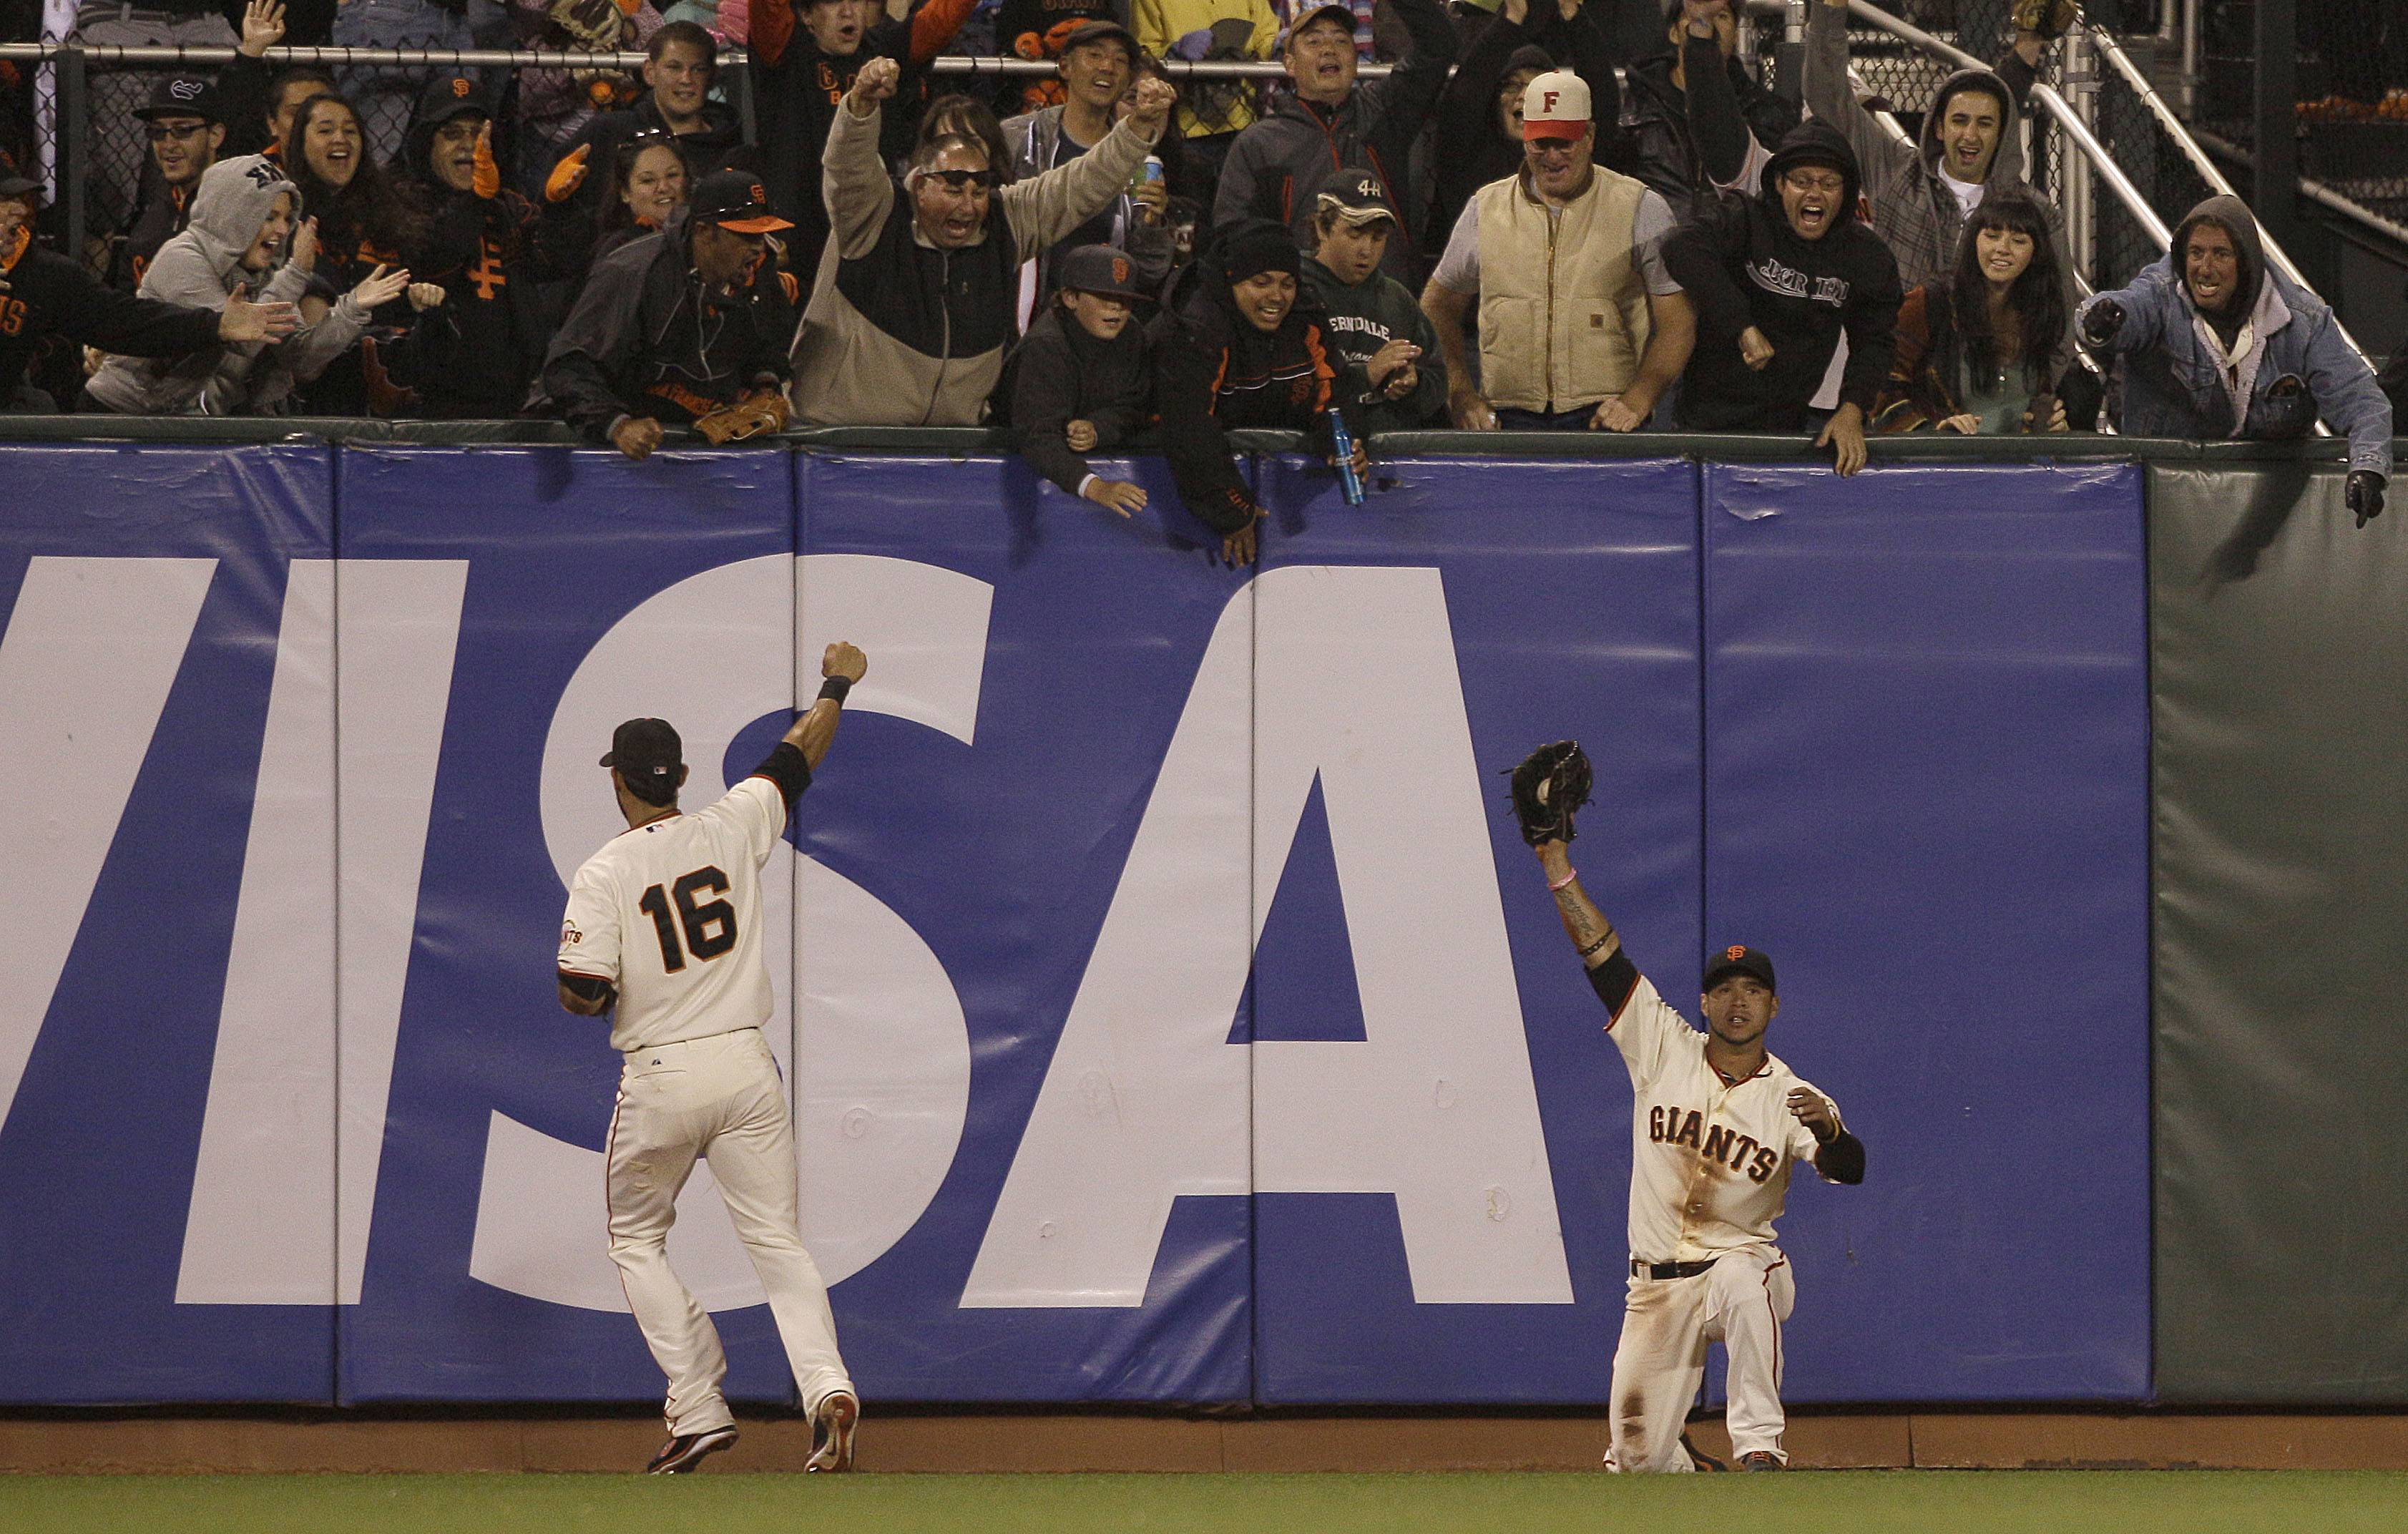 San Francisco Giants center fielder Gregor Blanco, right, celebrates with left fielder Angel Pagan after catching a fly ball hit by the Houston Astros' Jordan Schafer Wednesday during the seventh inning.